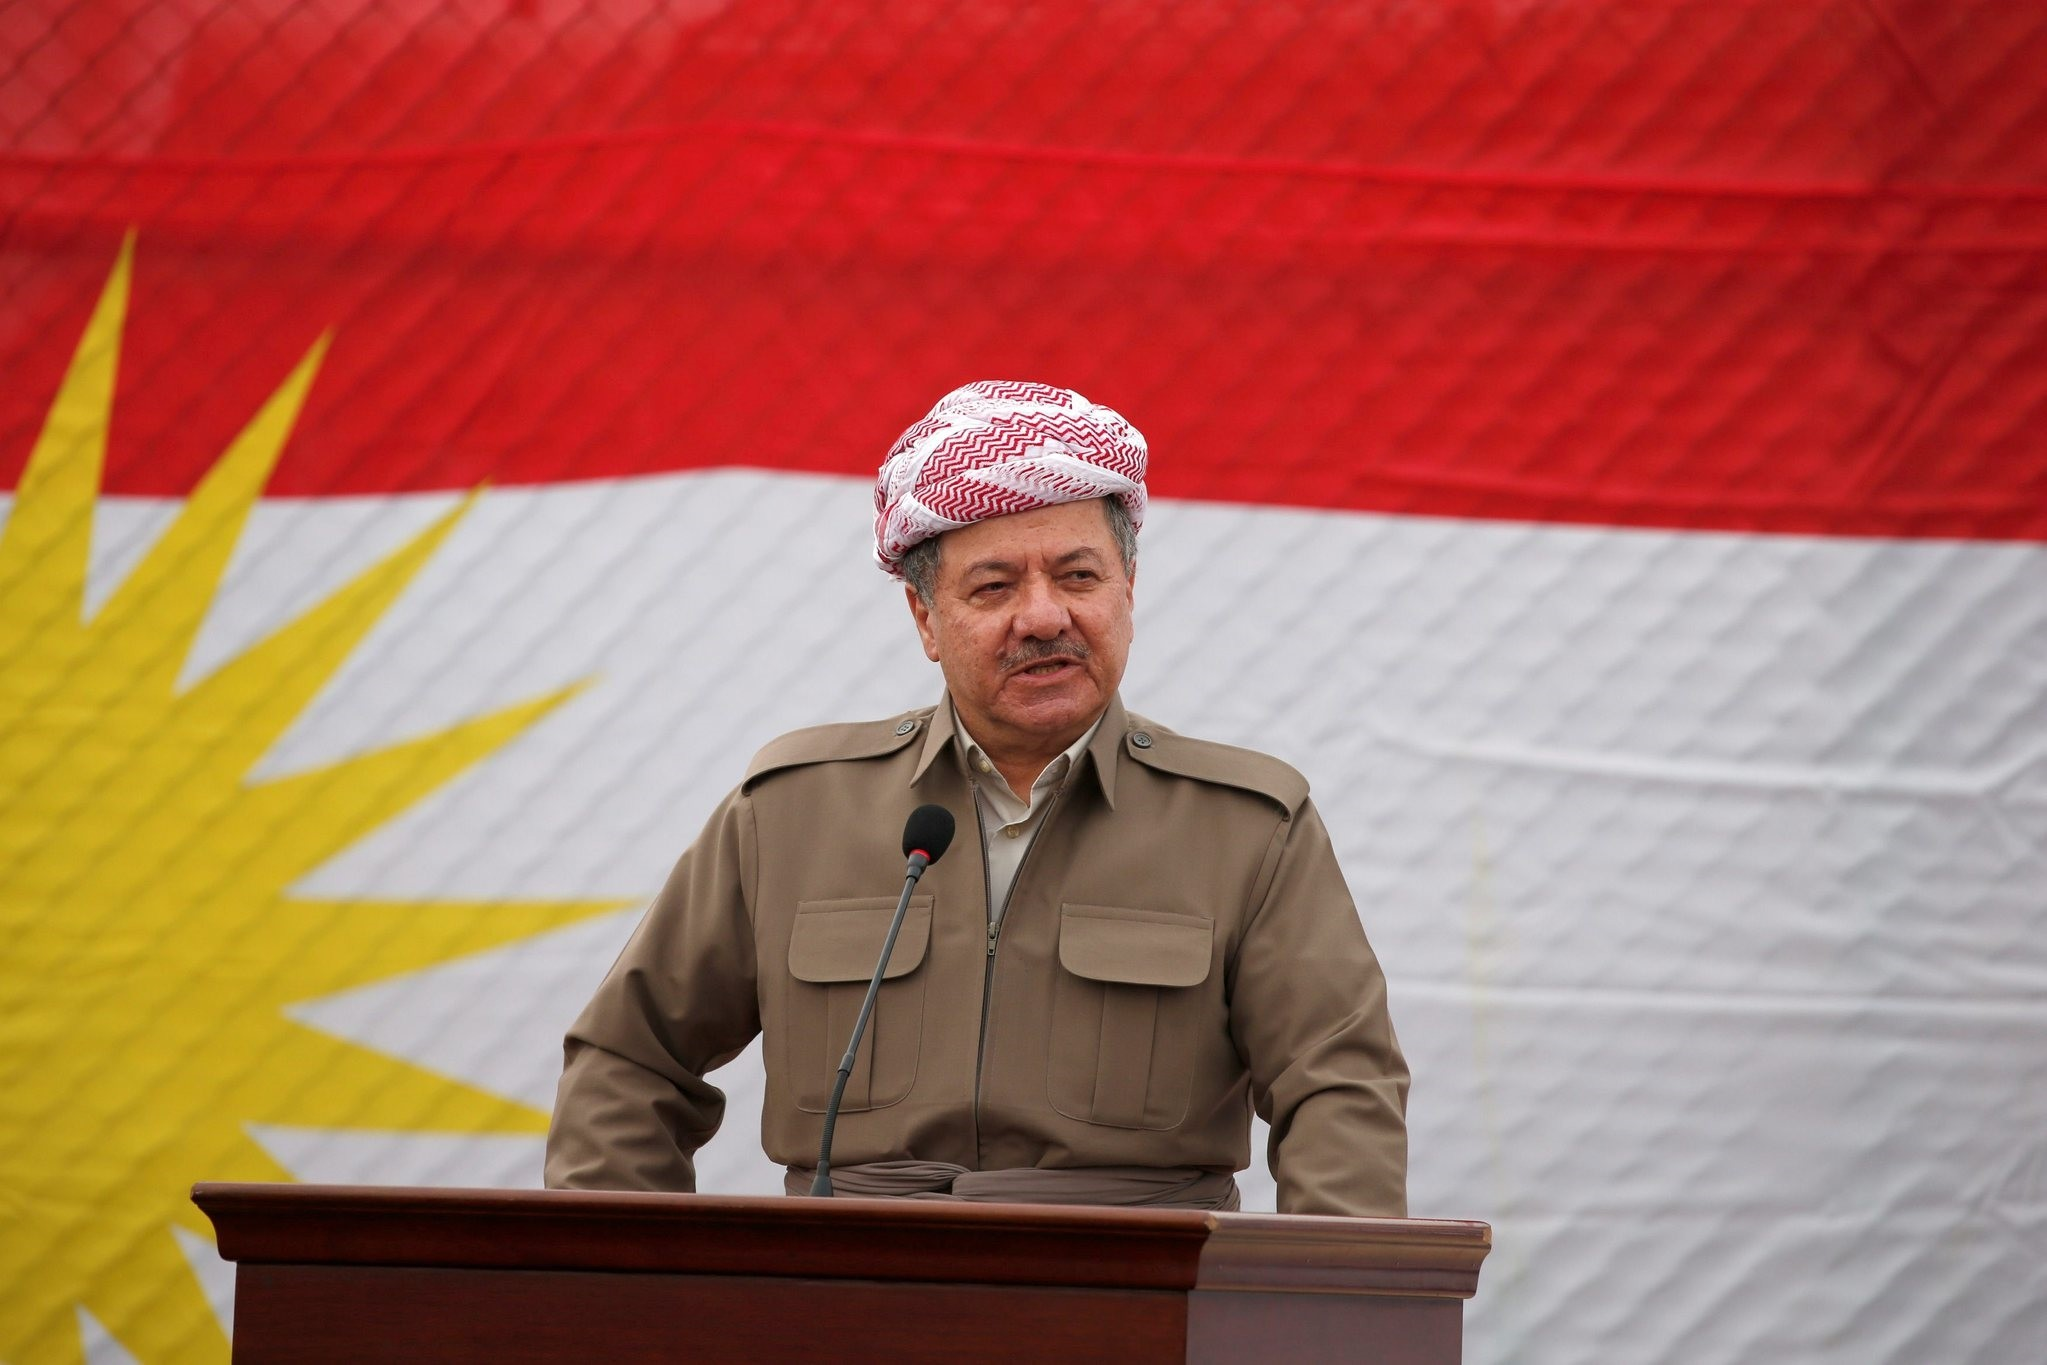 Kurdish Regional Government President Masoud Barzani speaks to the media during his visits in the town of Bashiqa, after it was recaptured from the Islamic State, east of Mosul, Iraq, November 16, 2016. (REUTERS Photo)